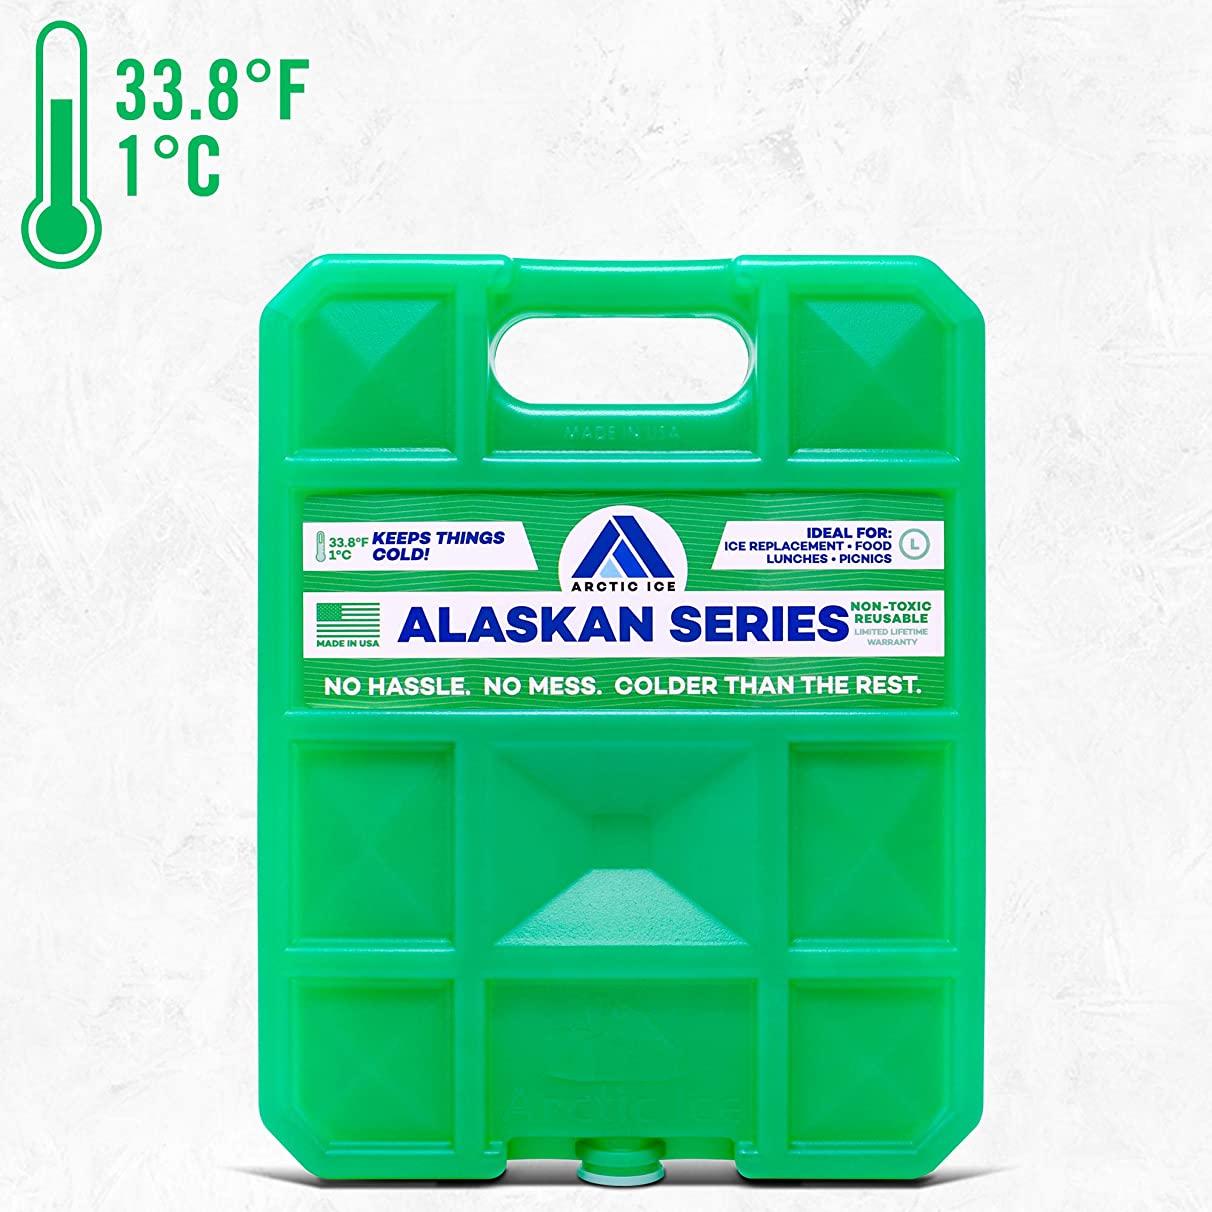 Long Lasting Ice Pack for Coolers, Camping, Fishing and More, Large Reusable Ice Pack, Alaskan Series by Arctic Ice